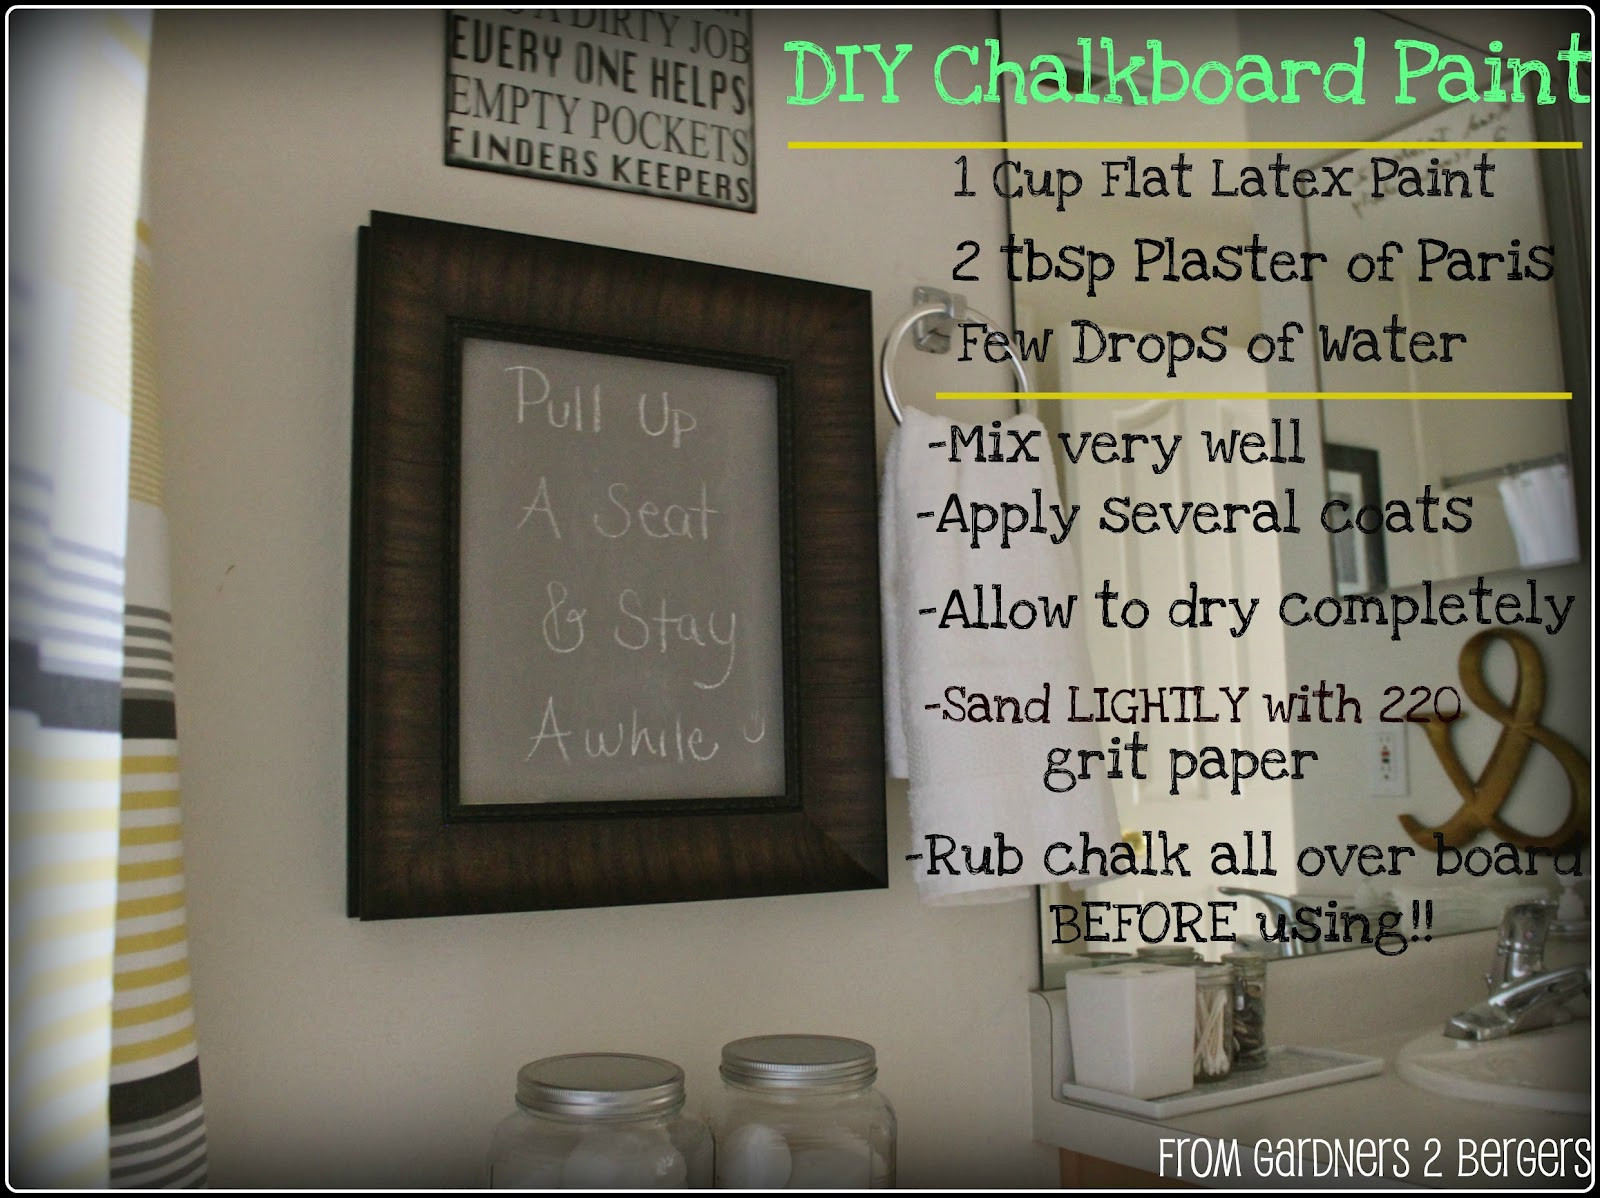 Best ideas about DIY Chalkboard Paint . Save or Pin from Gardners 2 Bergers 3 Chalkboard Projects DIY Now.